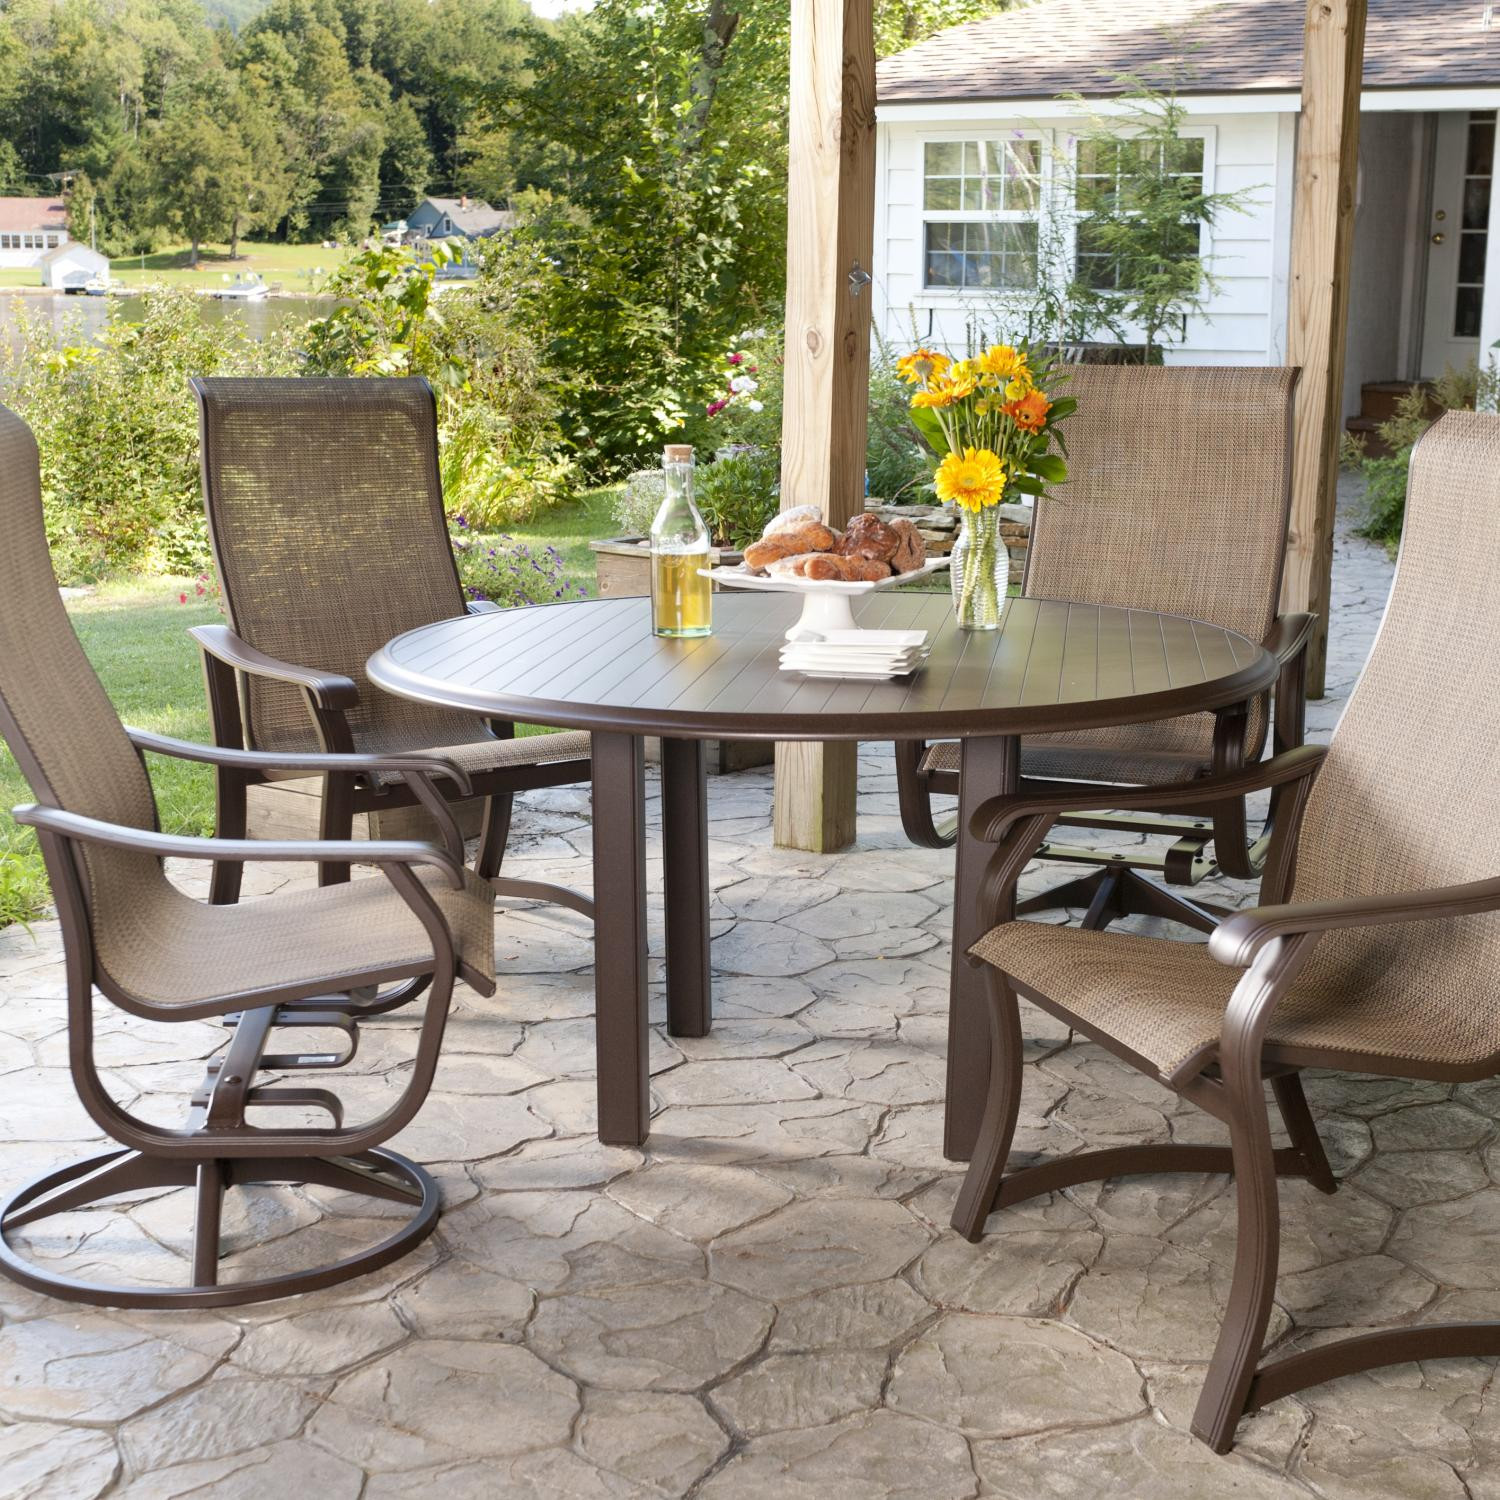 Best ideas about Patio Dining Sets On Sale . Save or Pin Patio Dining Sets Sale Now.